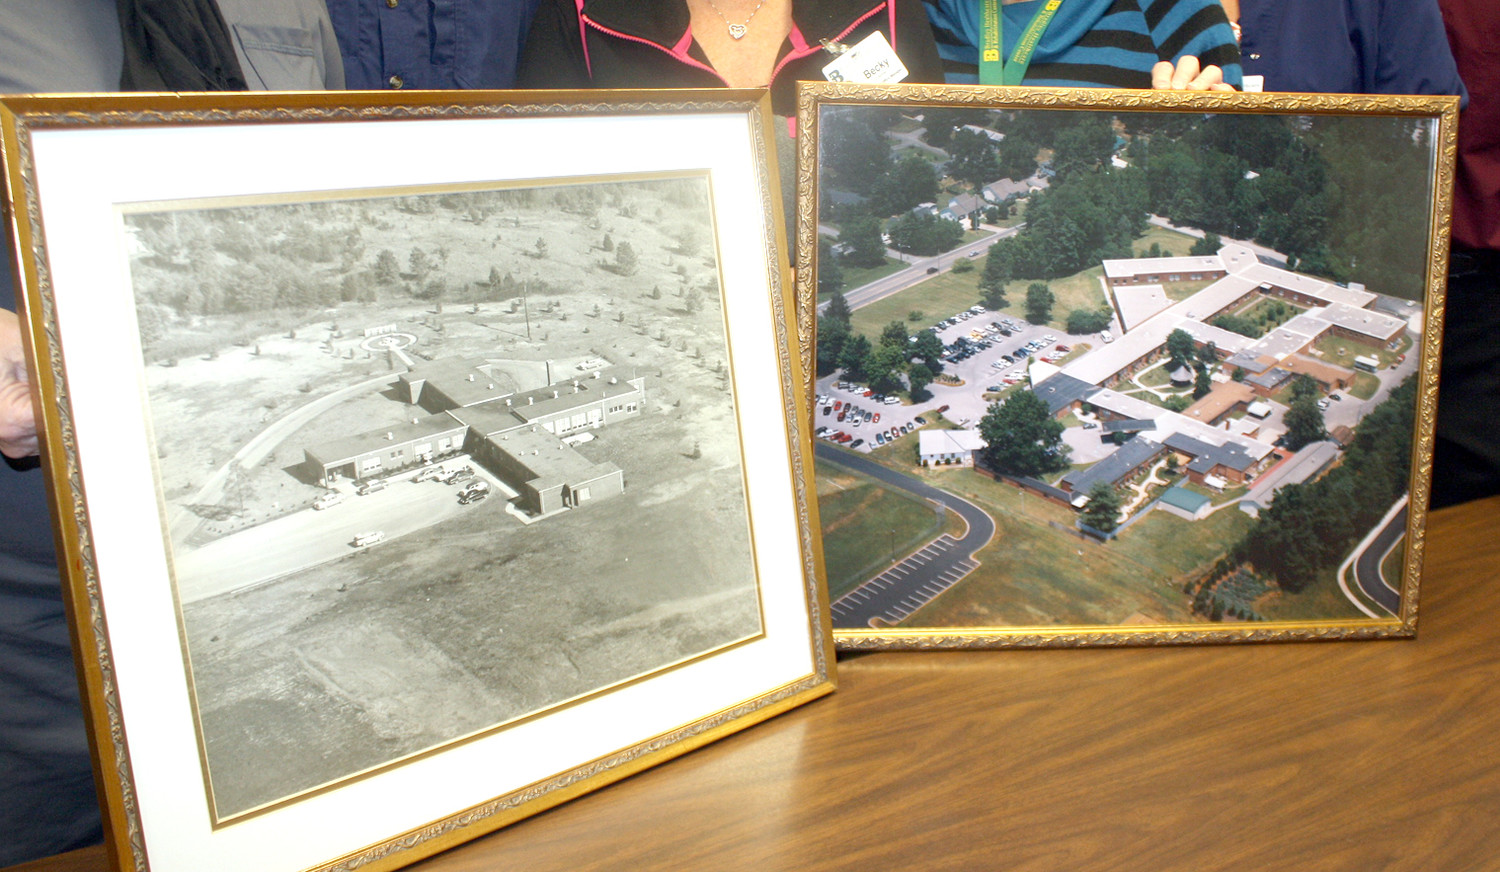 THE BRADLEY HEALTHCARE and Rehabilitation Center was opened as a county/state collaboration project in November of 1957 as a 51-bed facility, left photograph. The county-owned facility has undergone three additions to become a 200-plus-bed facility (right photo).